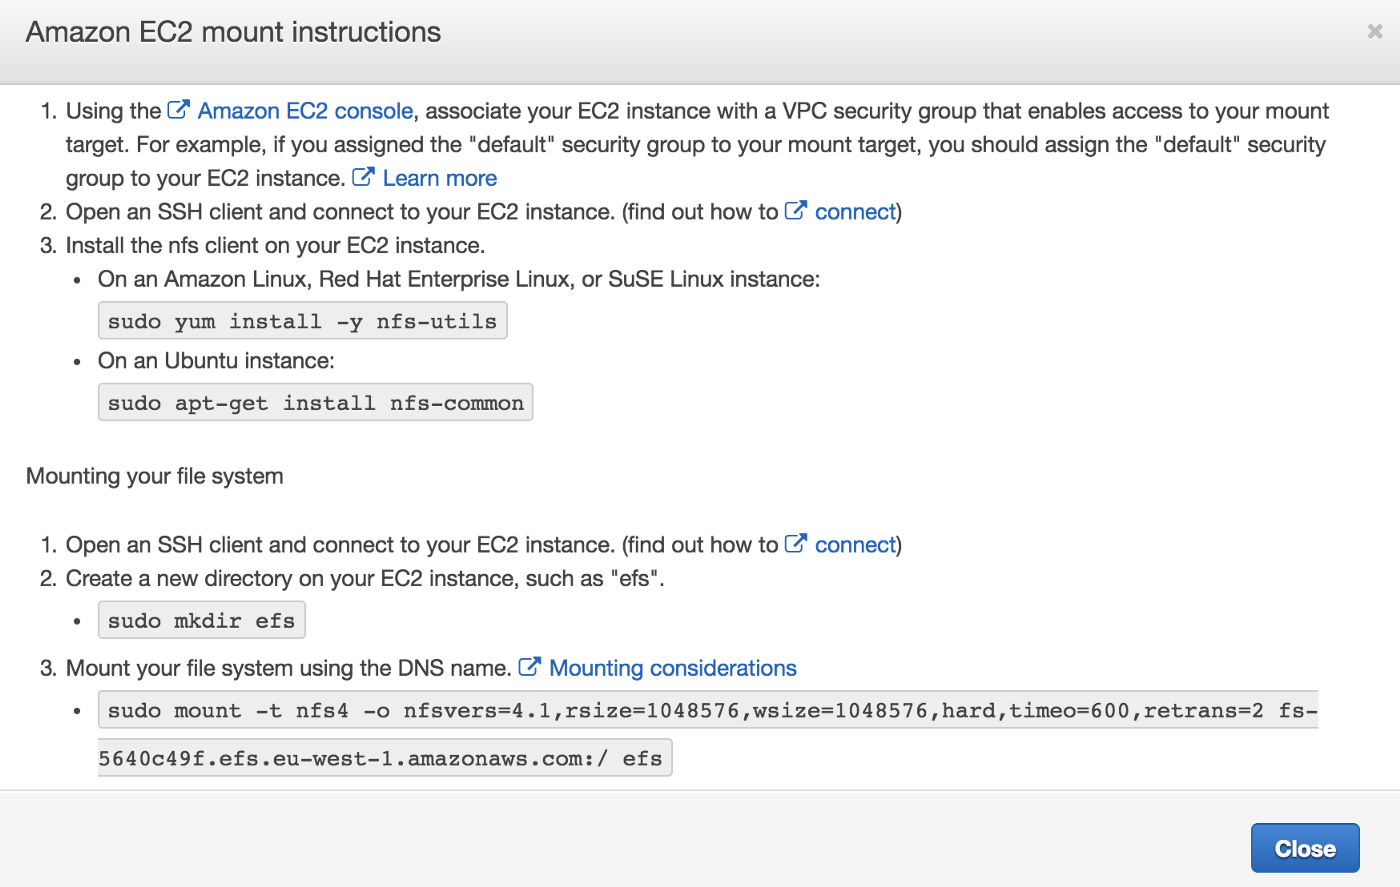 How To Mount Efs On Ec2 Linux